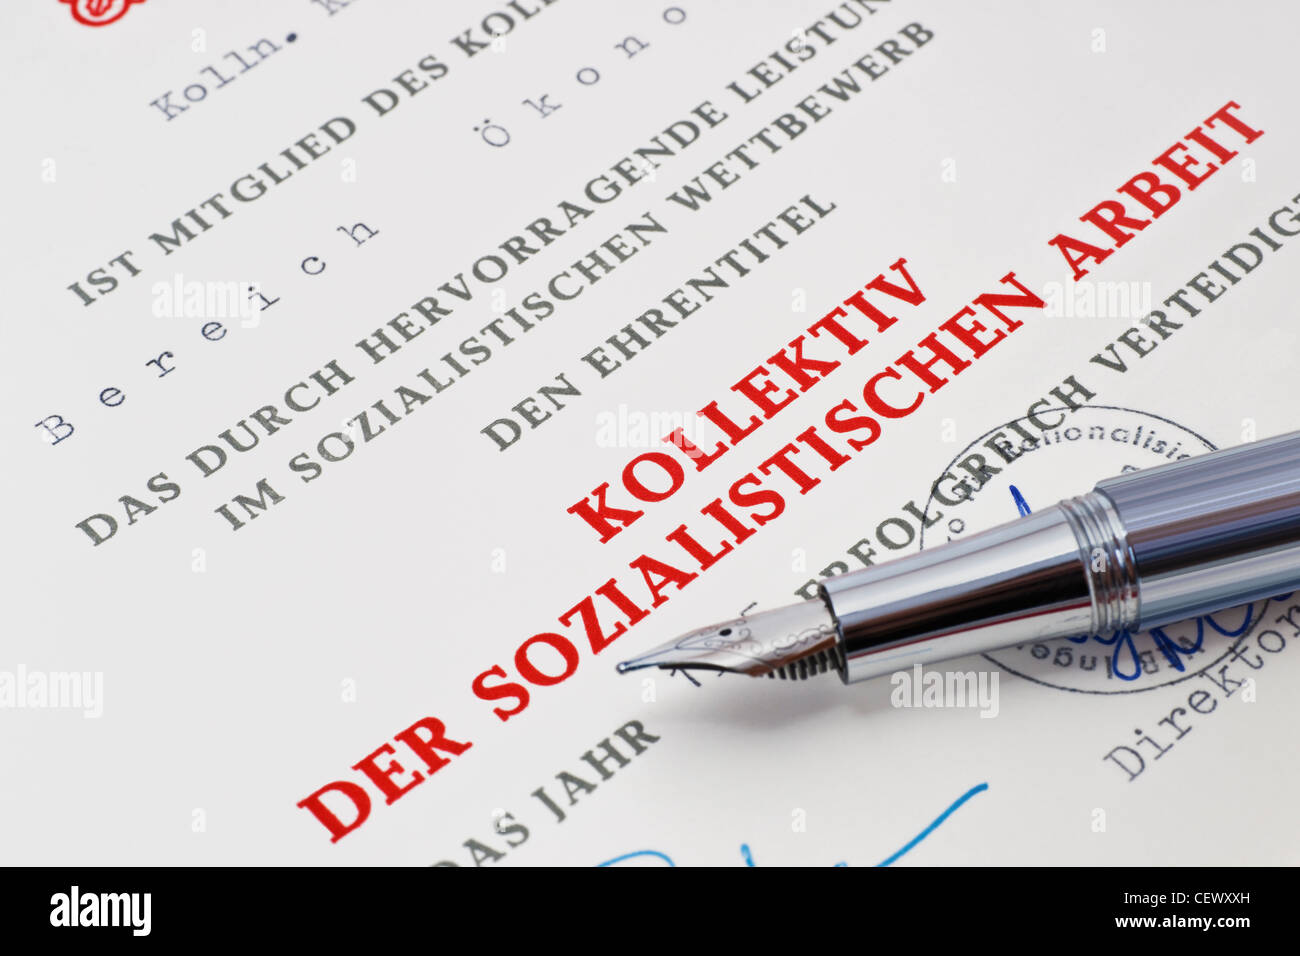 Deed collective of the socialist work from GDR - Stock Image